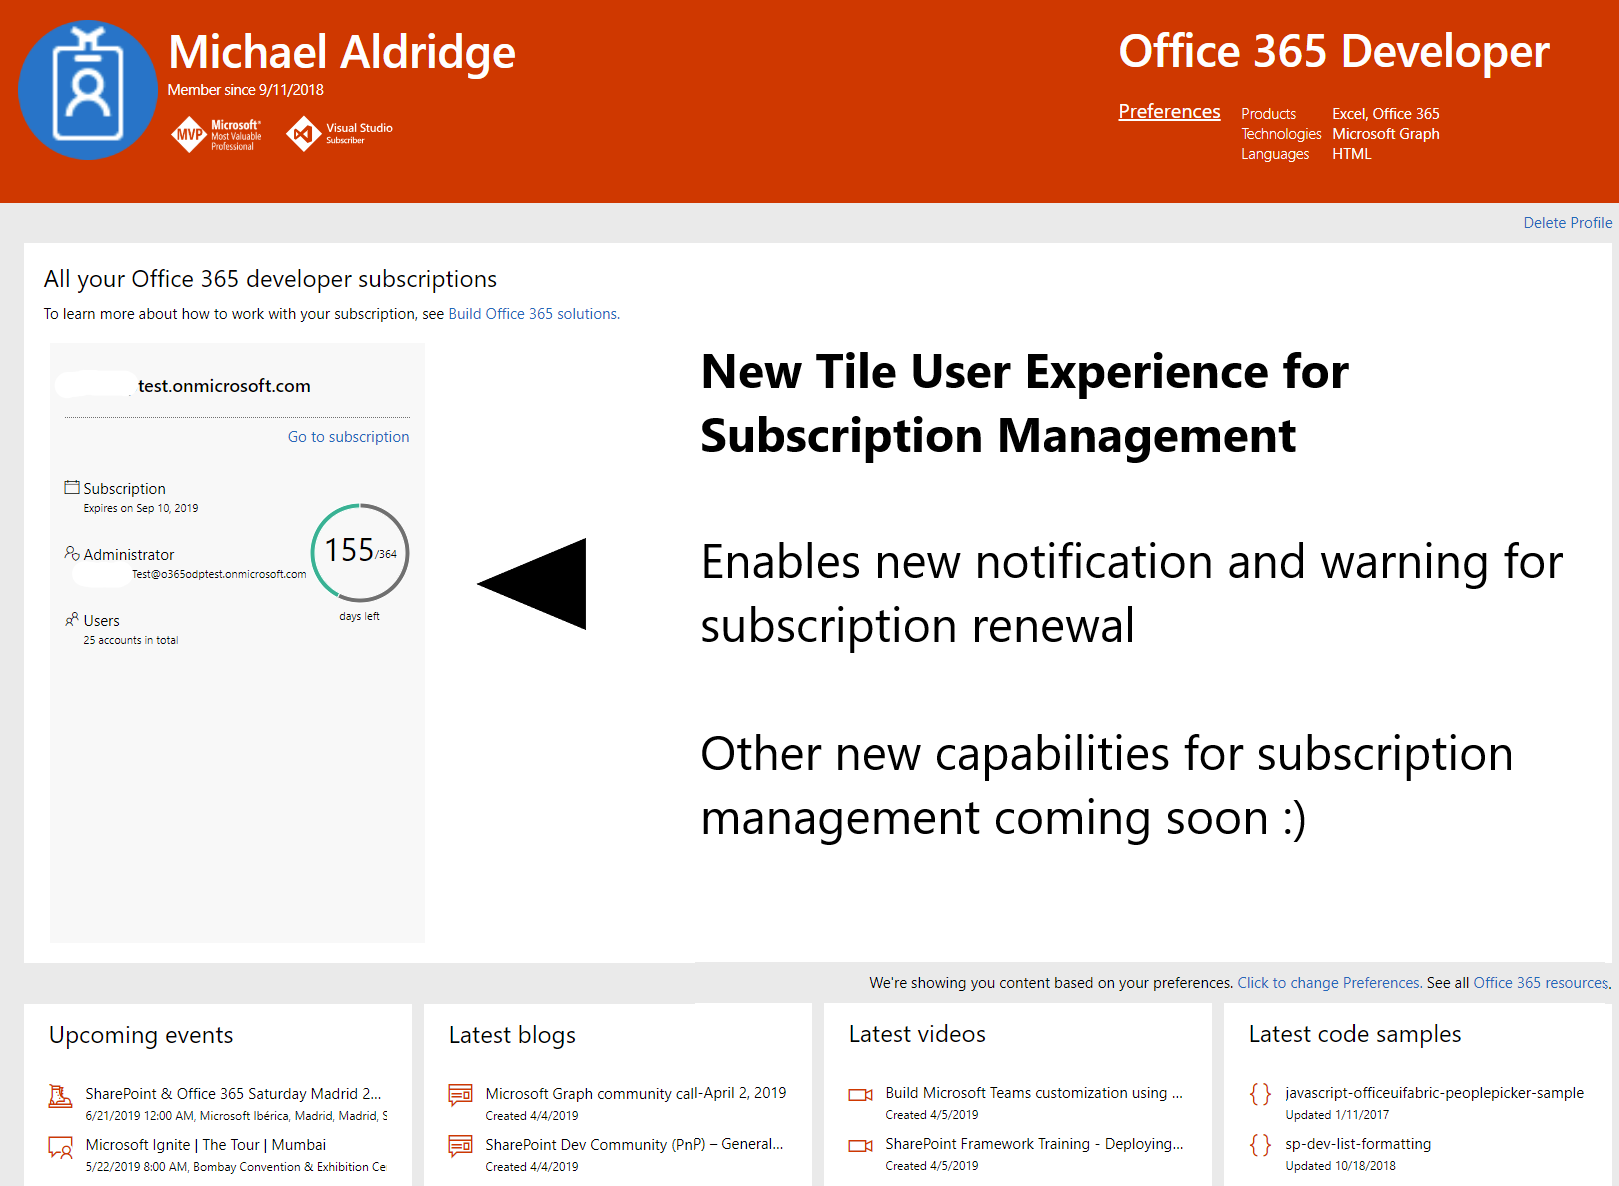 New renewable Office 365 developer subscriptions launch on